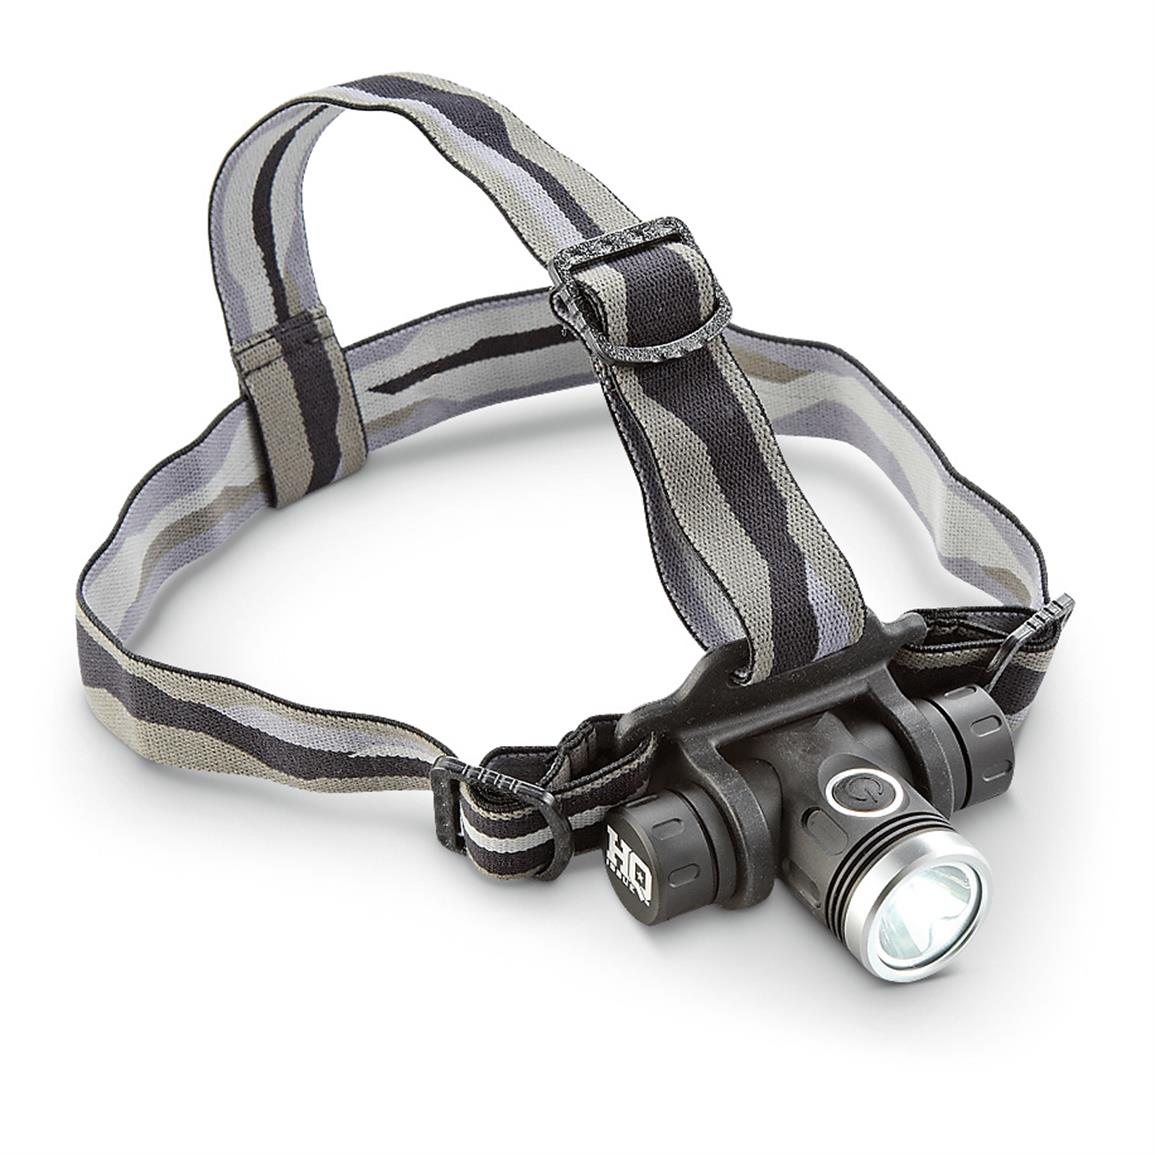 HQ ISSUE LED Headlamp, 540 Lumen